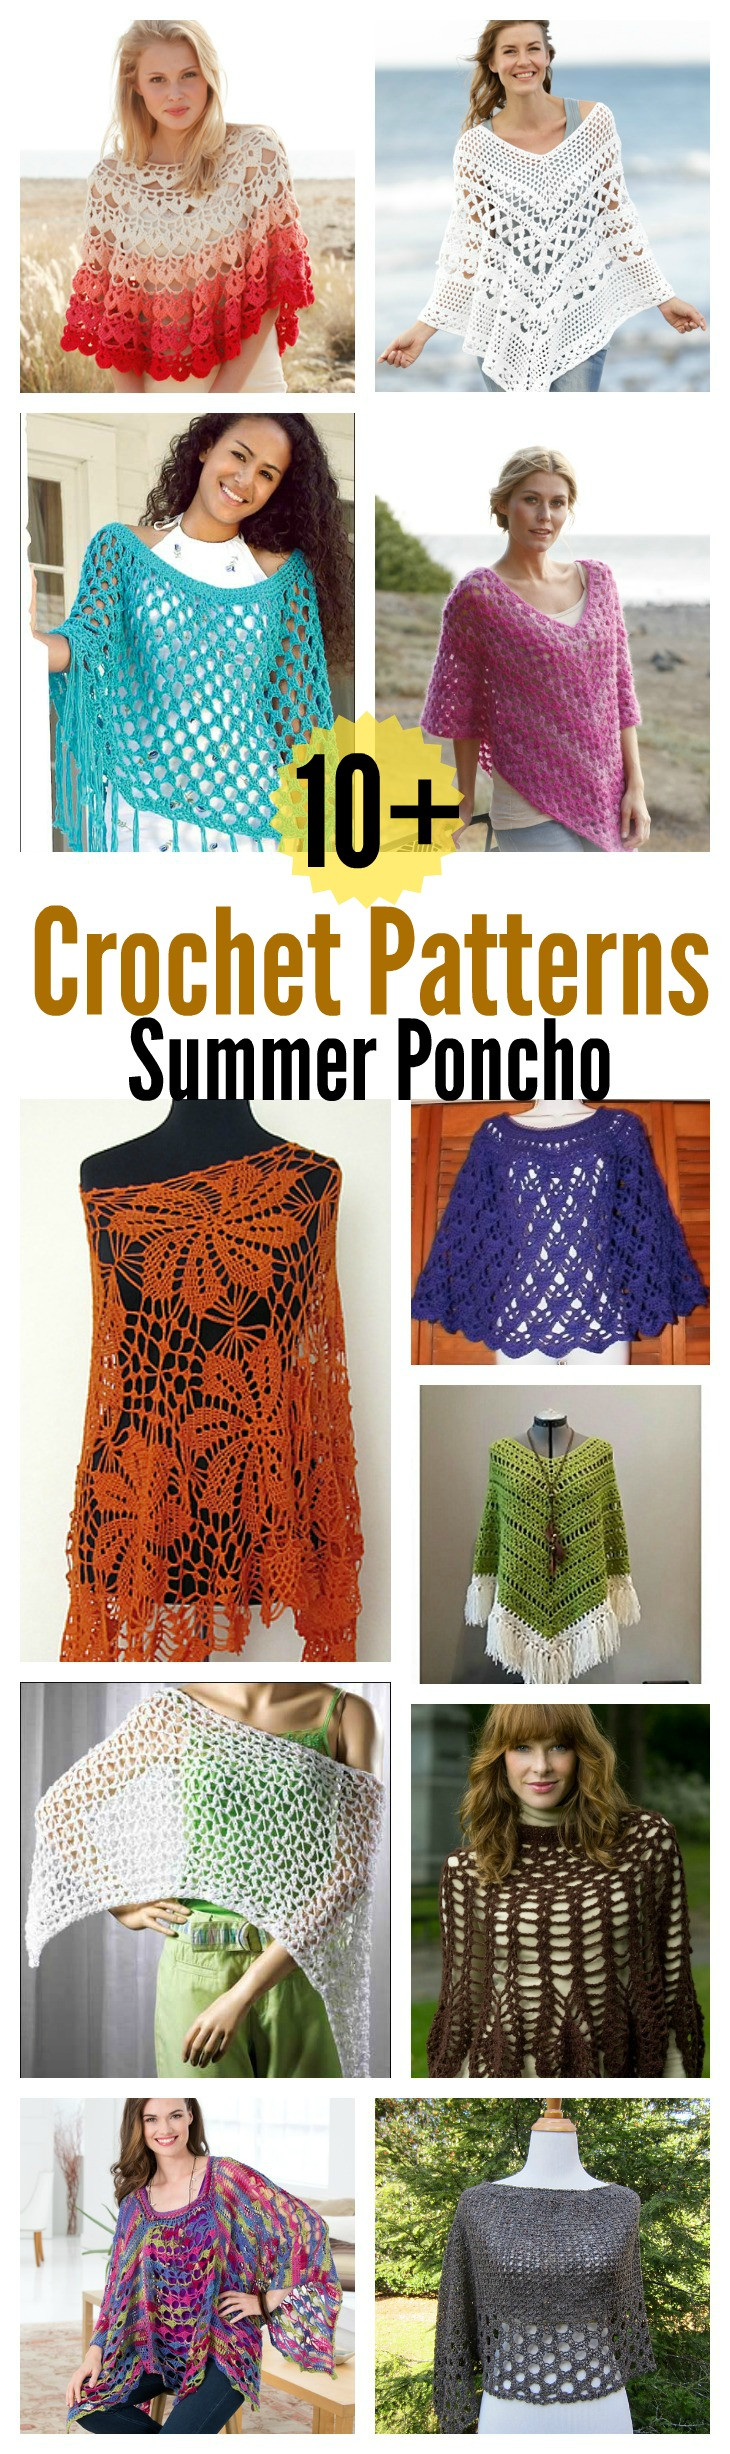 Summer Crochet New 10 Summer Poncho Free Crochet Patterns Page 2 Of 2 Of Awesome 43 Ideas Summer Crochet